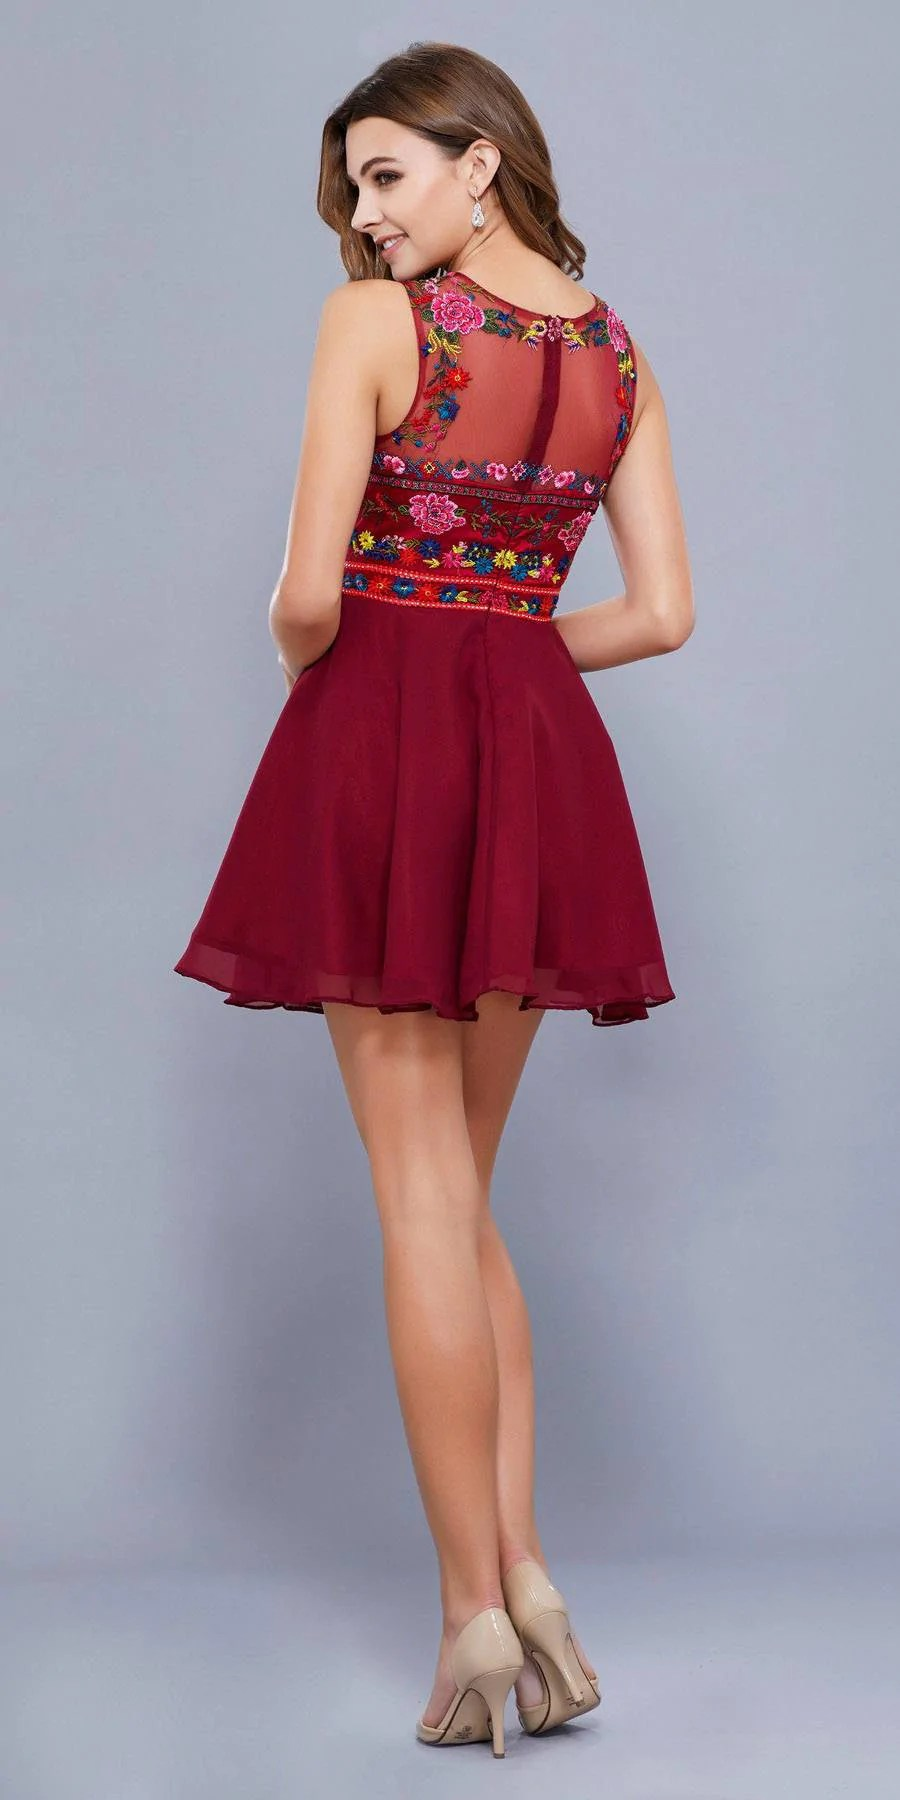 Floral Embroidered Short Prom Dress